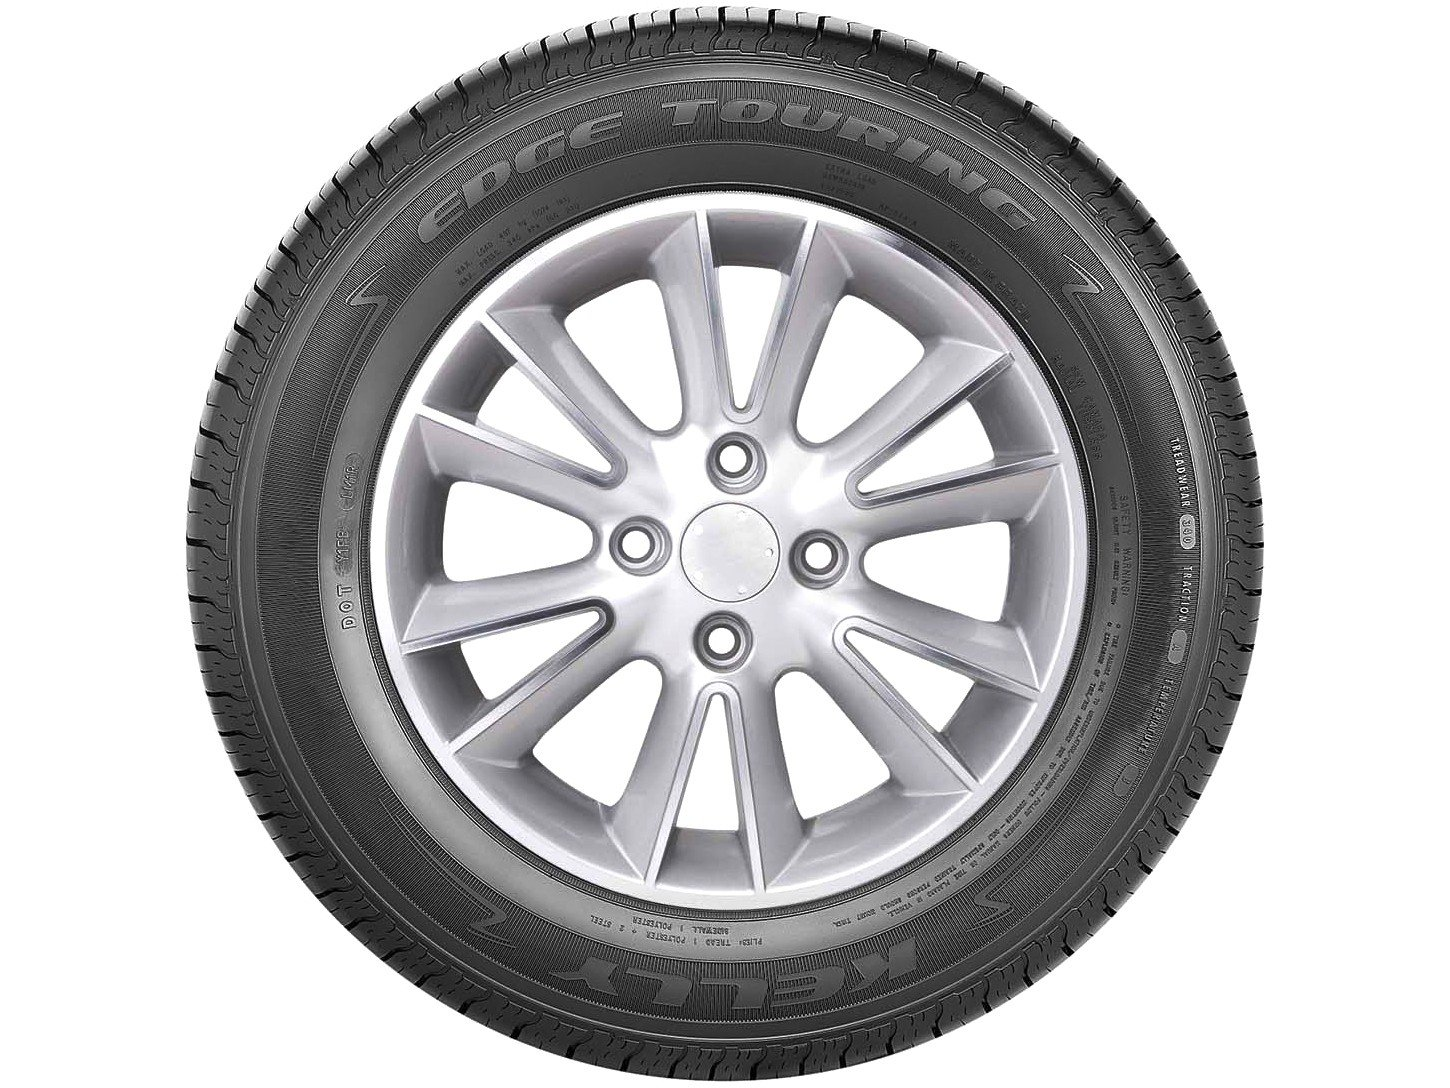 "Pneu Aro 14"" Goodyear 175/70R14 - Kelly Edge Touring 88T - 2"